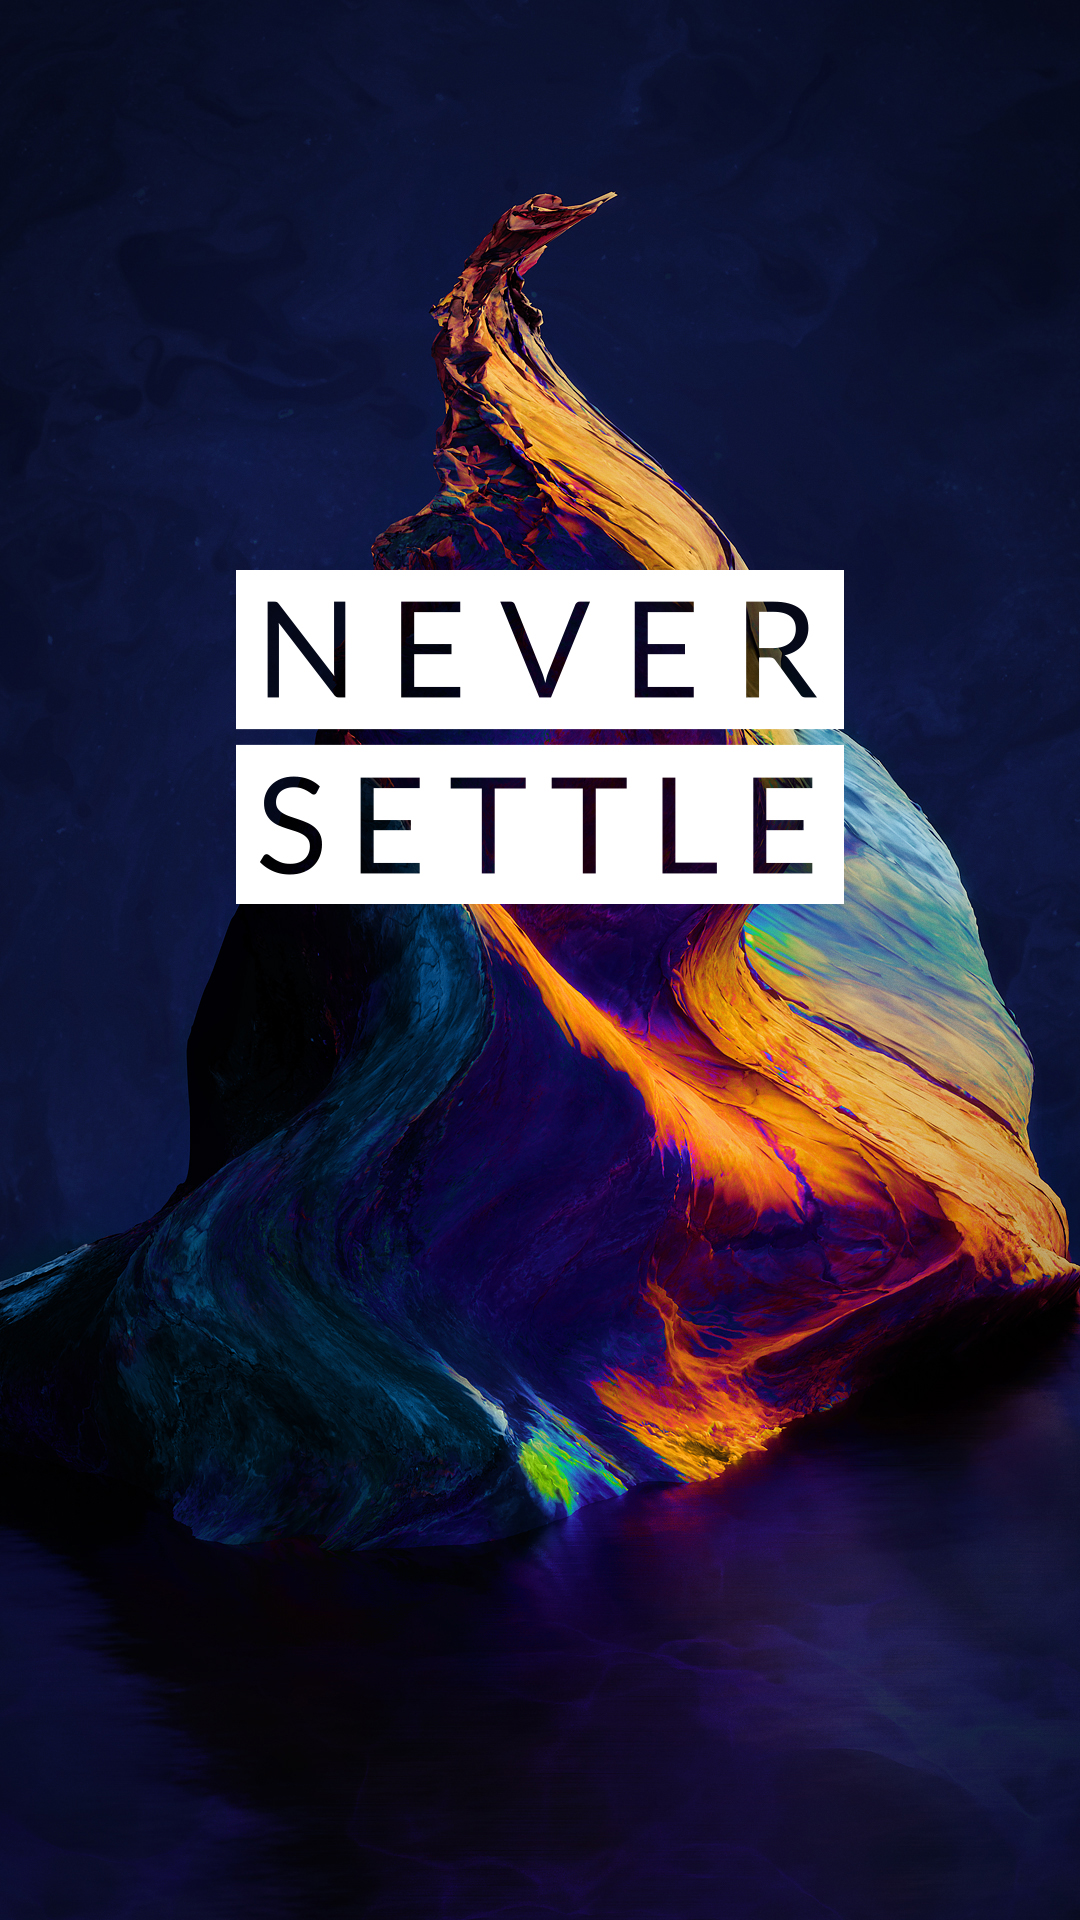 oneplus wallpapers settle never plus 4k fhd phone hd channel anime fwned technical mind wallpapercave version